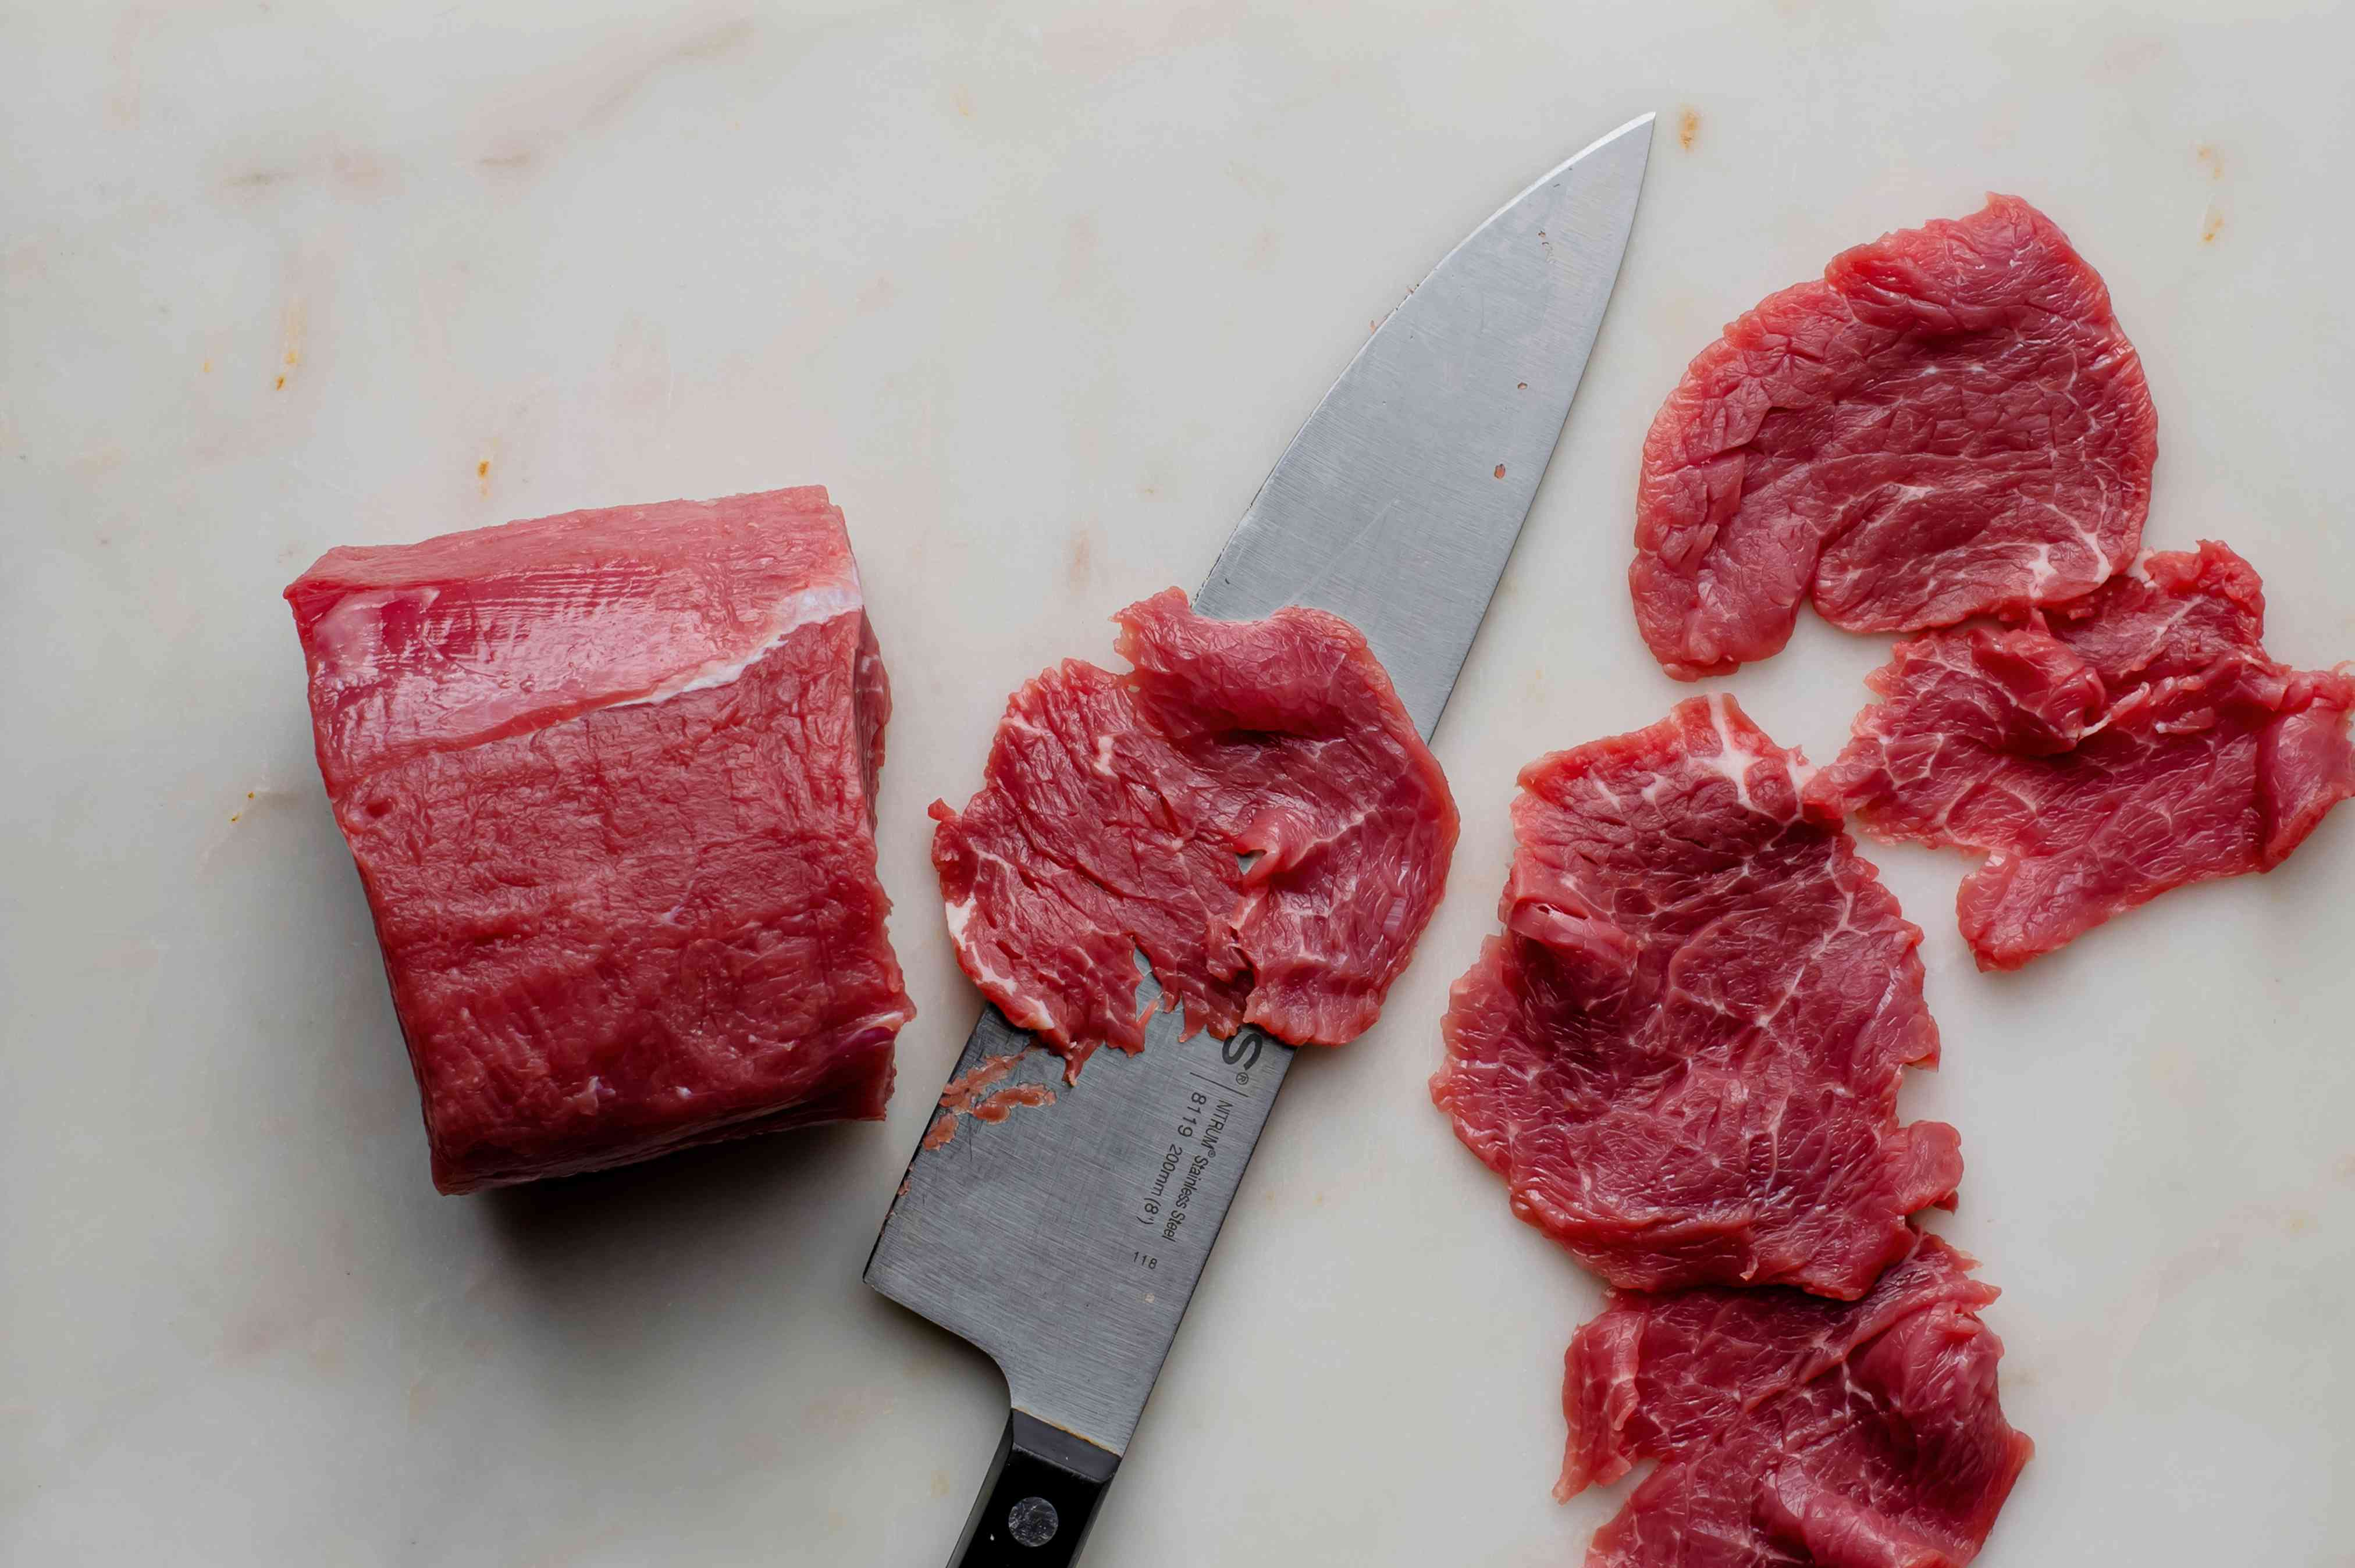 slice meat into thin pieces